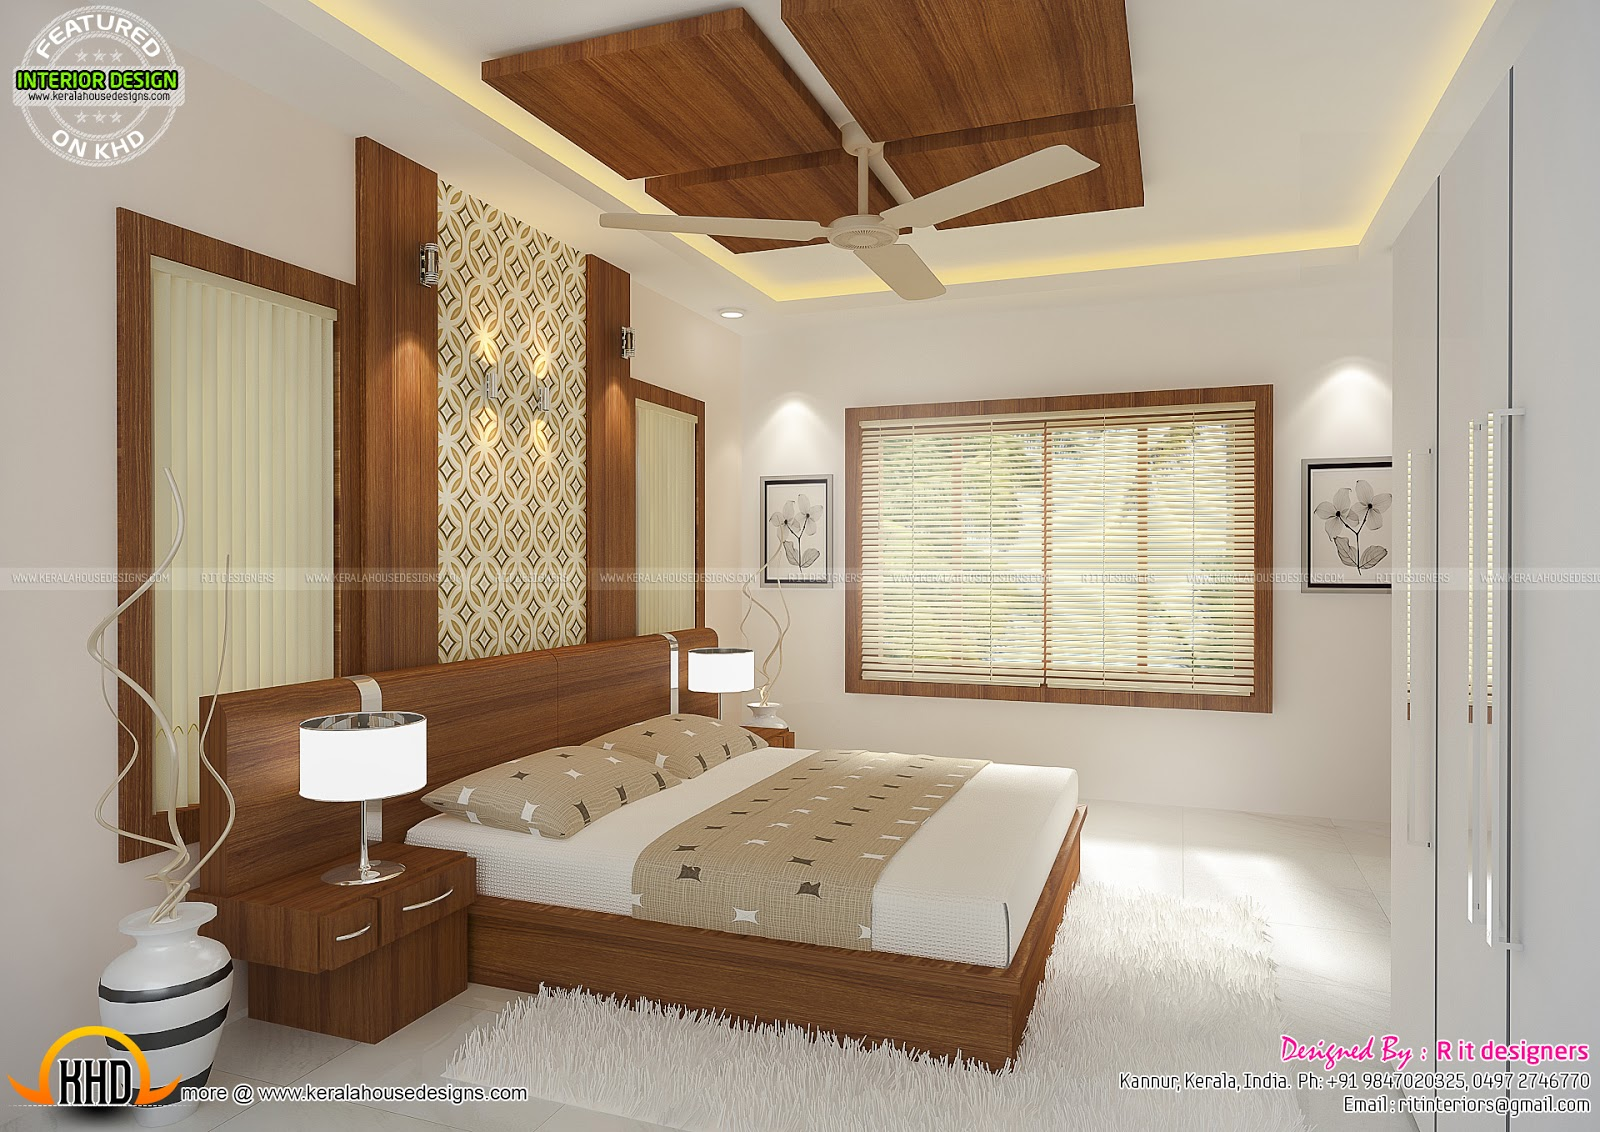 Bedroom Design Kerala Inspirations Bedroom Interior Design With